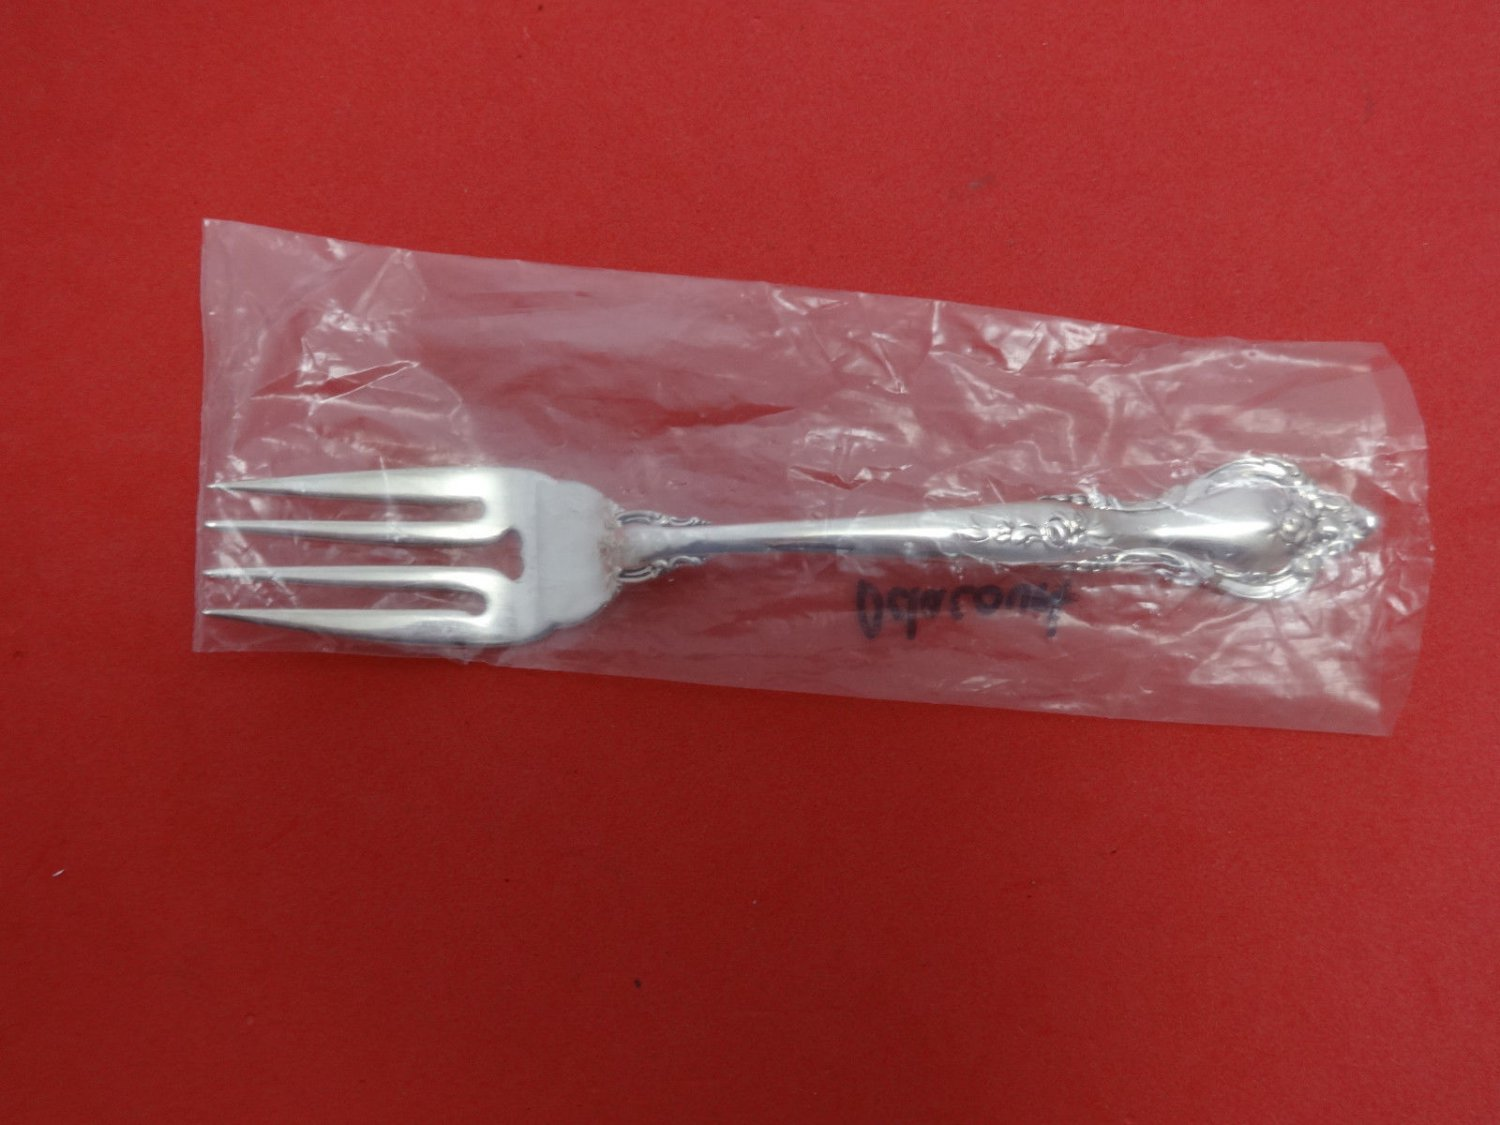 "Delacourt by Lunt Sterling Silver Salad Fork 6 1/2"" New"